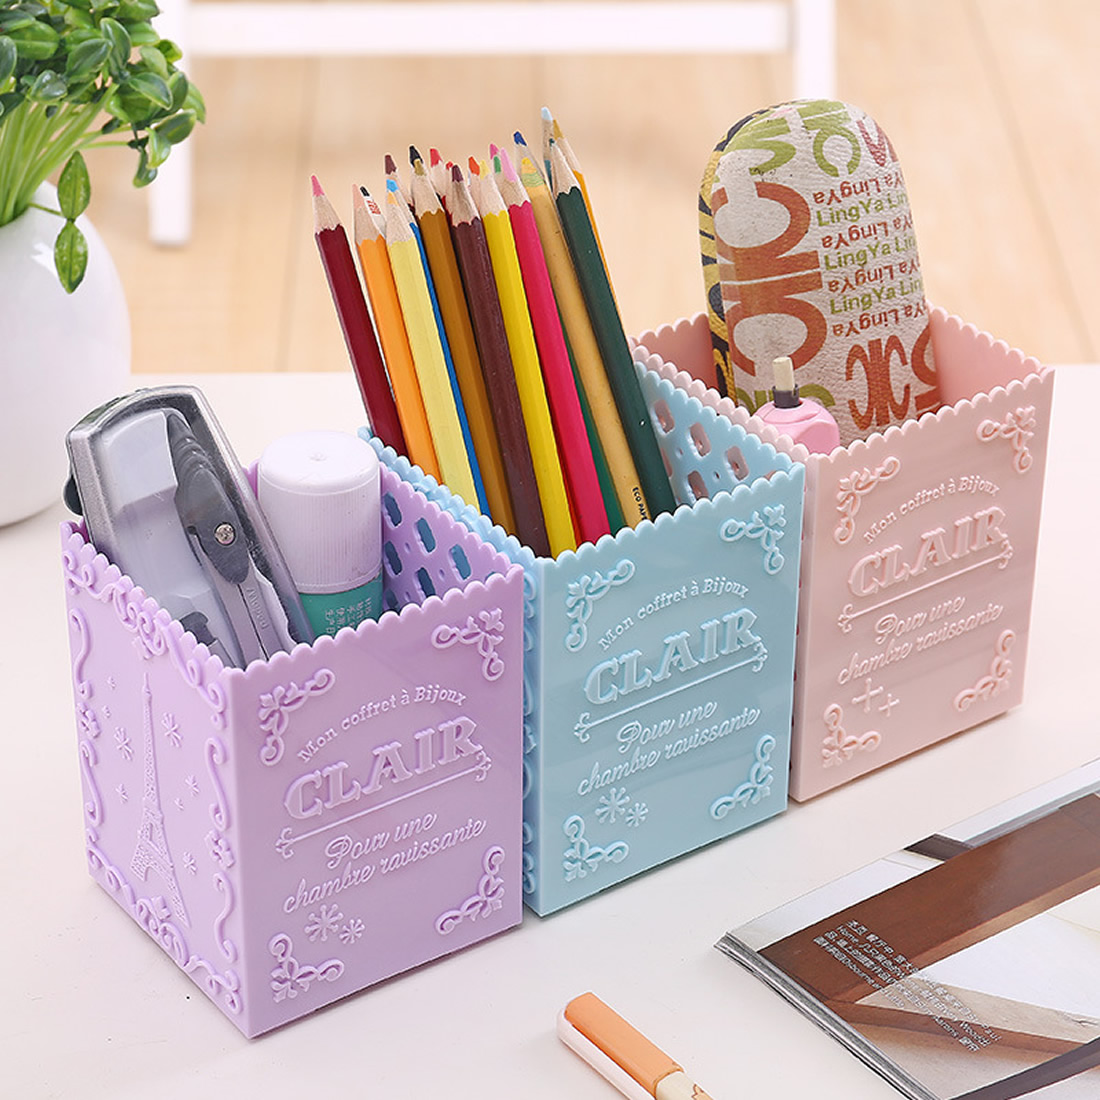 Cute Home Office Storage Boxes Pen Stationery Small Sundries Storage Holder Hanger Girl Bedroom Desktop Storage Boxes Organizers